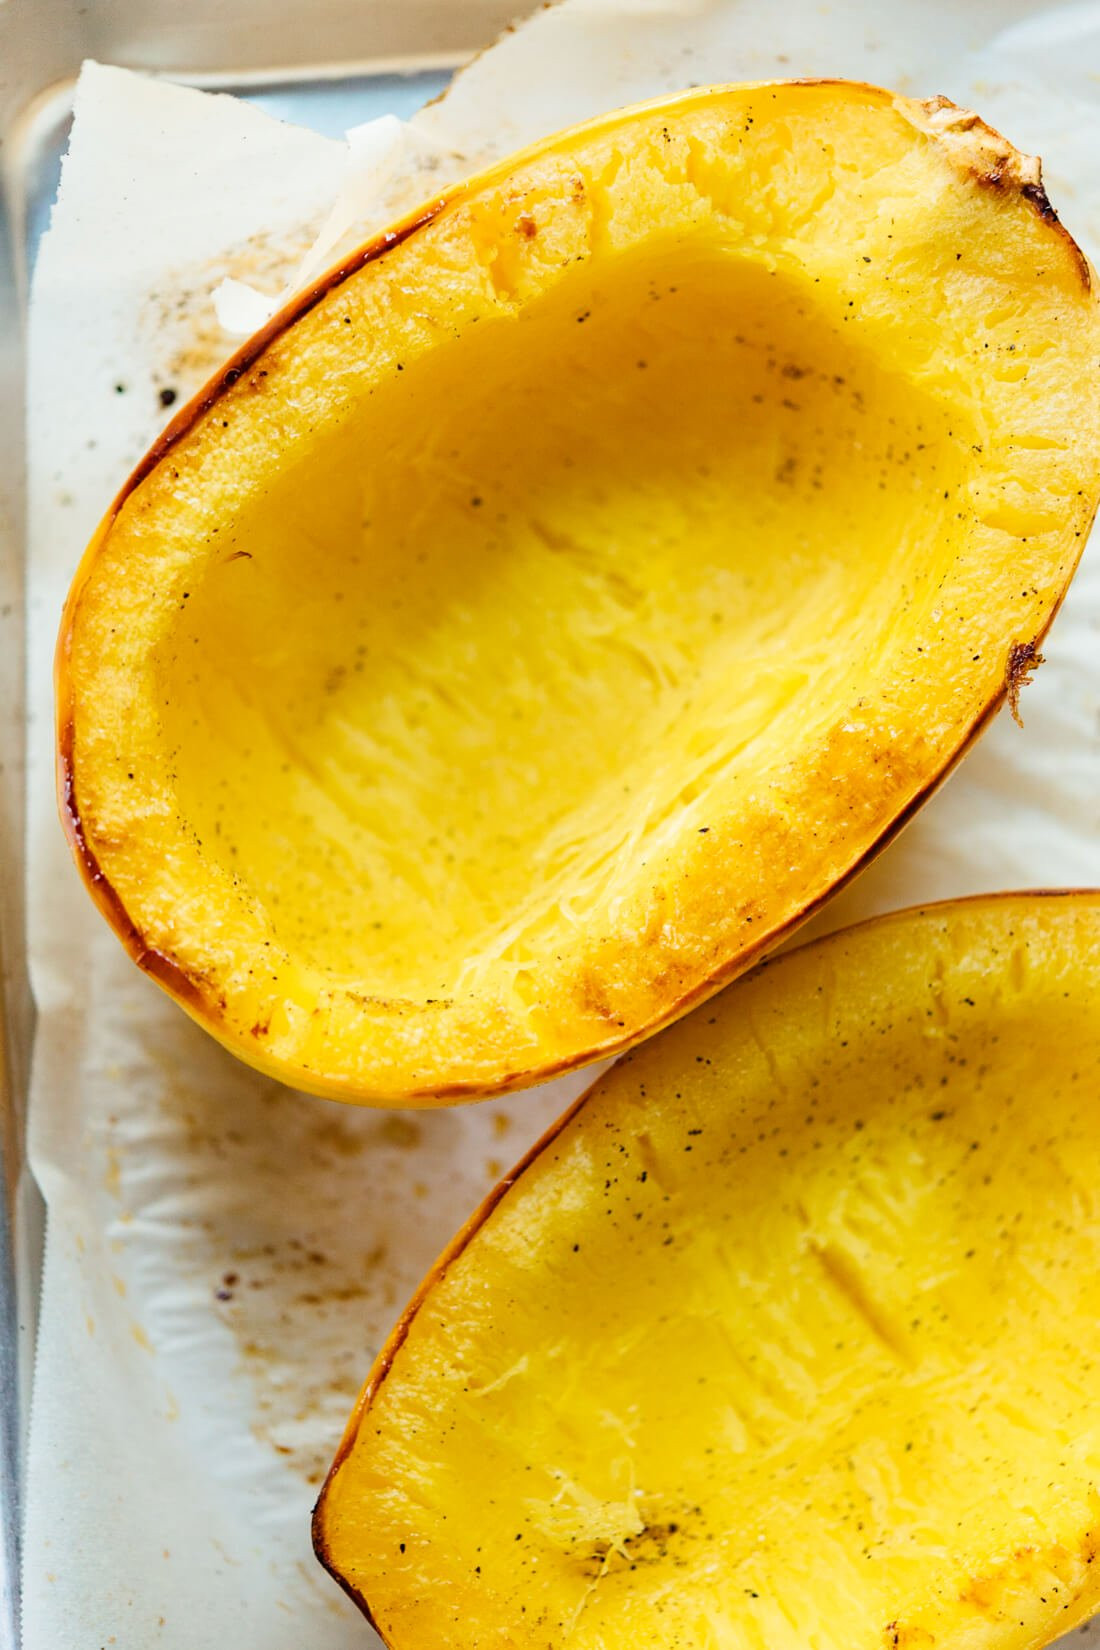 Microwave Spaghetti Squash  How to Cook Spaghetti Squash The Best Way Cookie and Kate